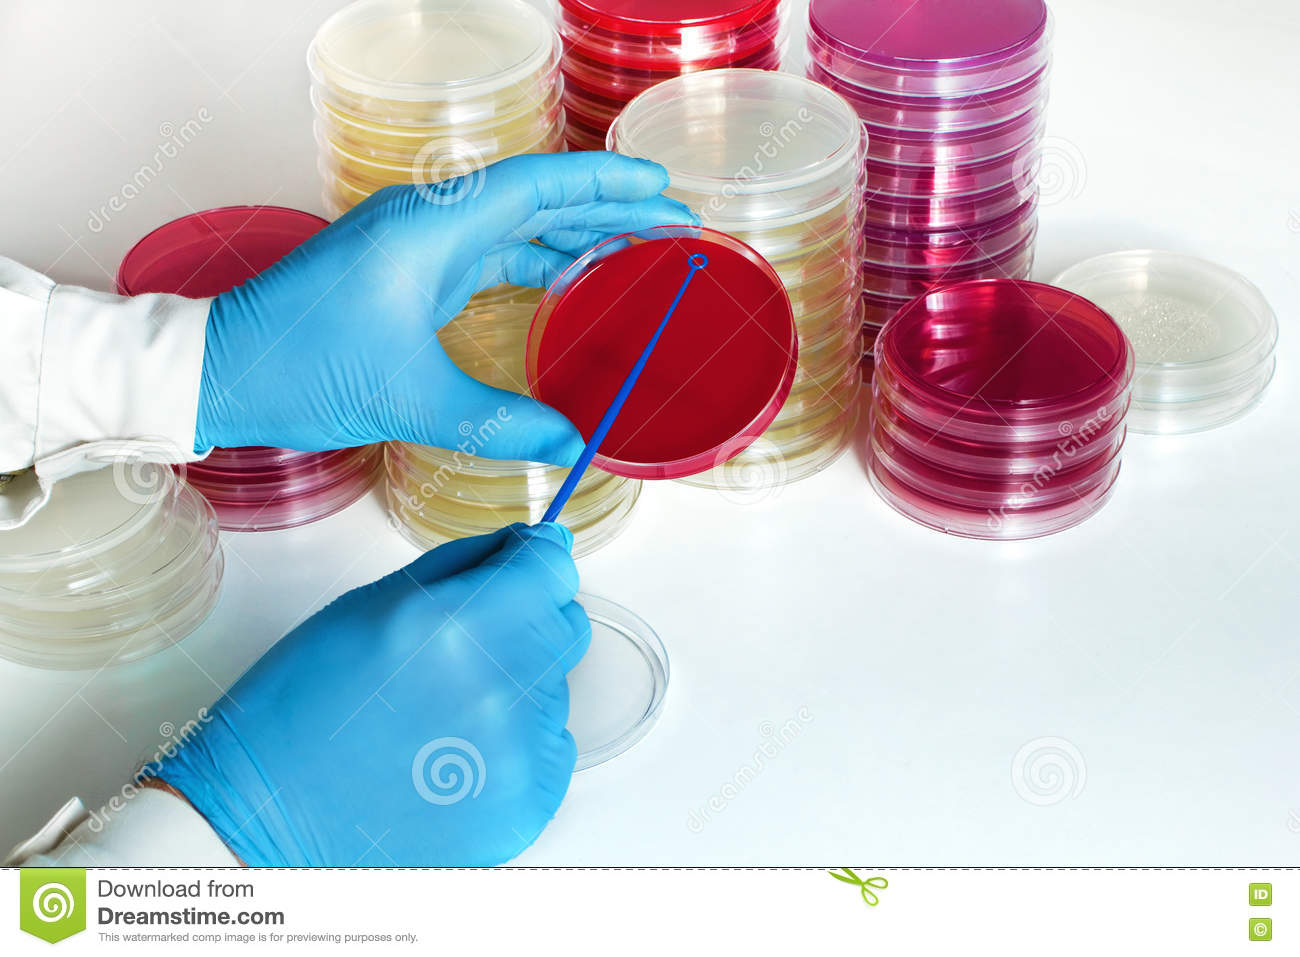 urine culture and urinalysis biology essay Clinical urine tests are various tests of urine for diagnostic purposes the most common is a urinalysis ( ua ), one of the most common methods of medical diagnosis  [1] the word is a portmanteau of the words urine and analysis  [2].